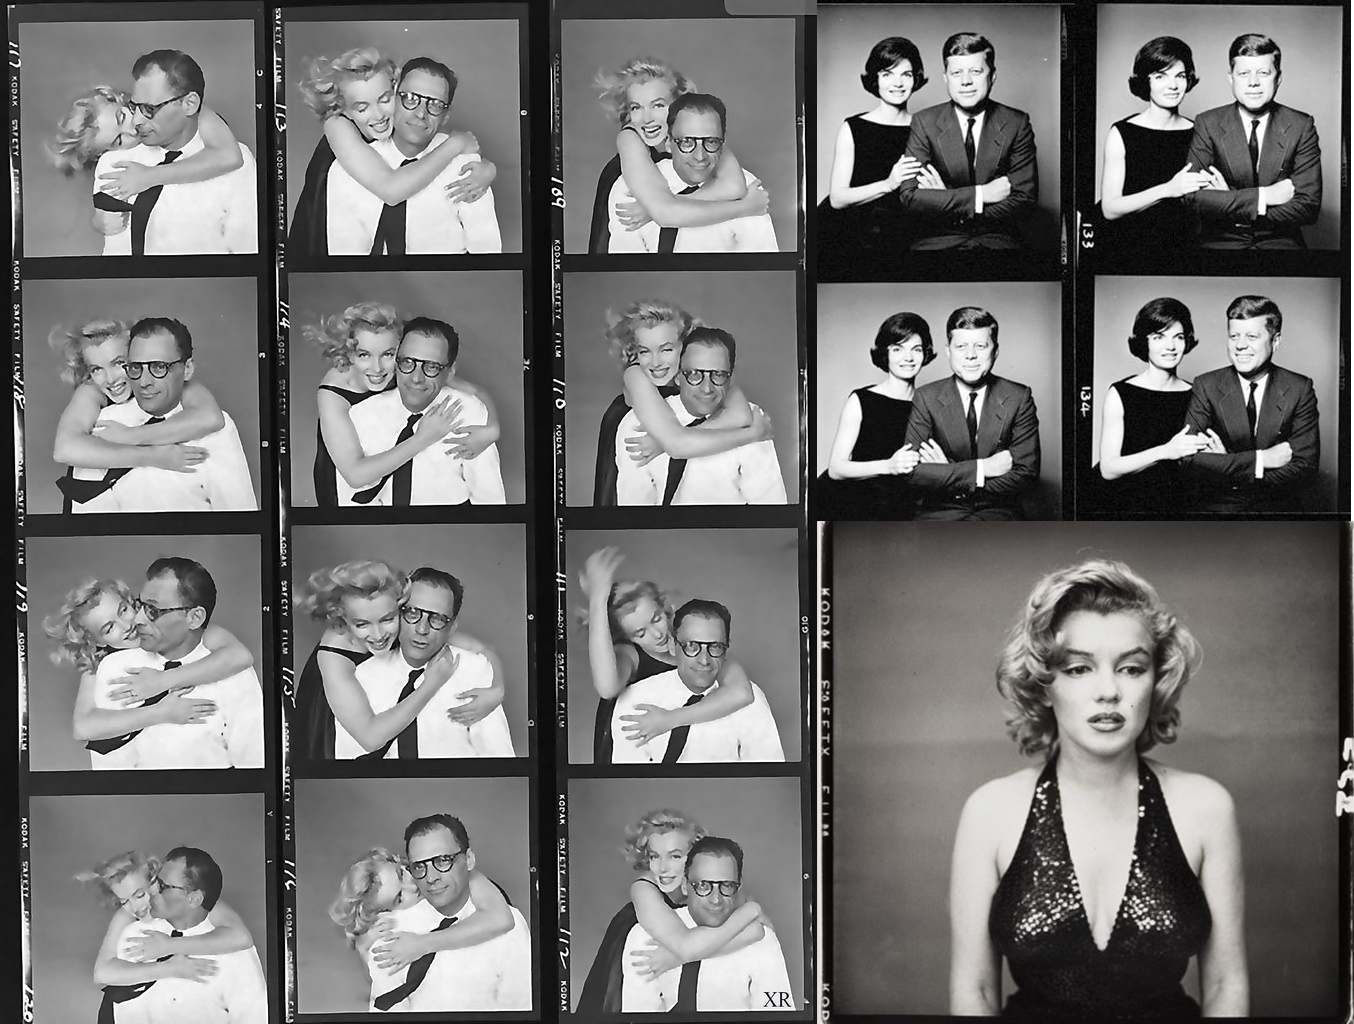 Left: Marilyn Monroe & Richard Avedon, Top Right: John & Jackie Kennedy, Bottom Right: Marilyn Monroe